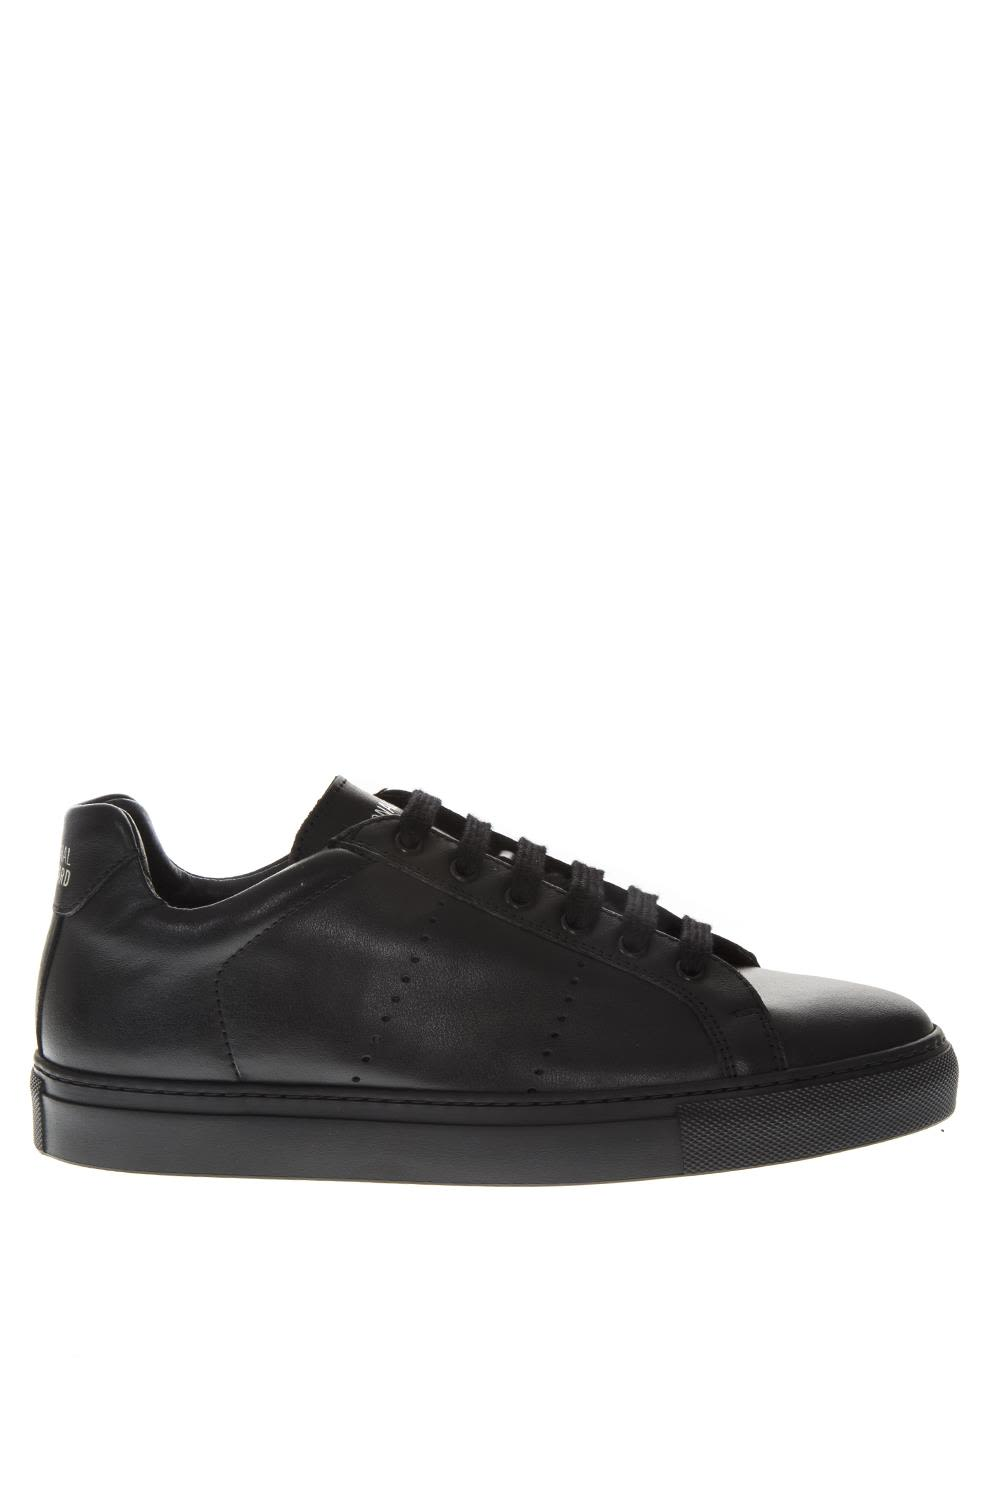 NATIONAL STANDARD Black Holes Leather Sneakers